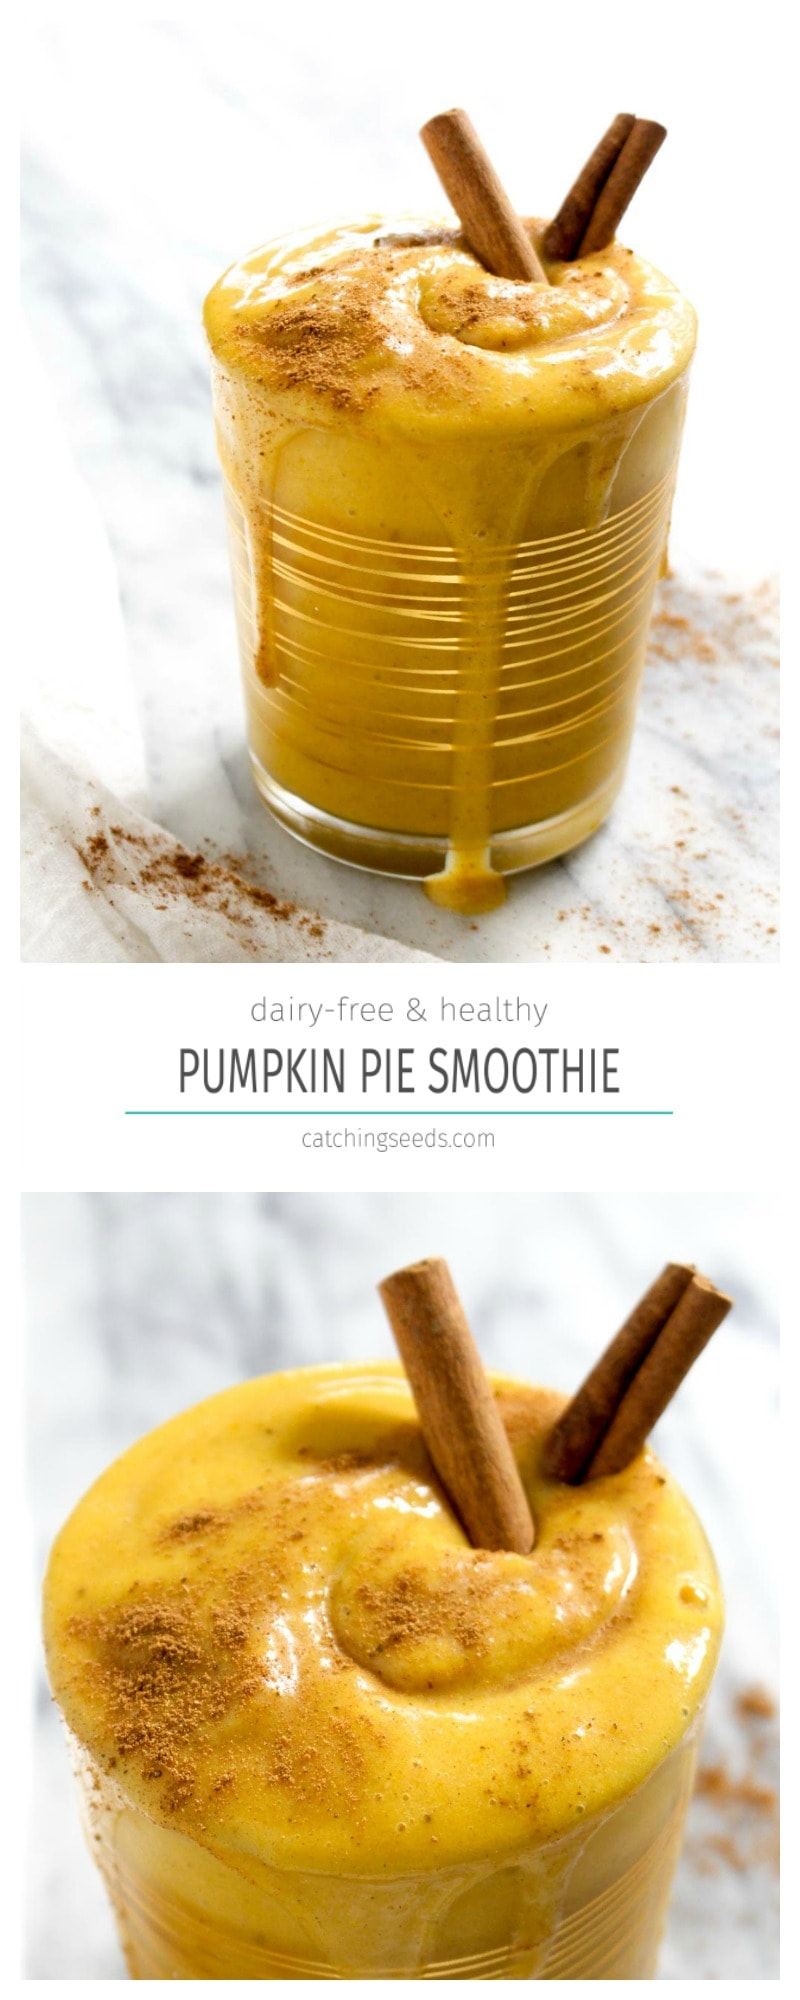 This Pumpkin Pie Smoothie is a healthy way to get your Pumpkin Pie fix! It is flavored with canned pumpkin and pumpkin pie spice. A Jamba Juice copycat recipe | CatchingSeeds.com